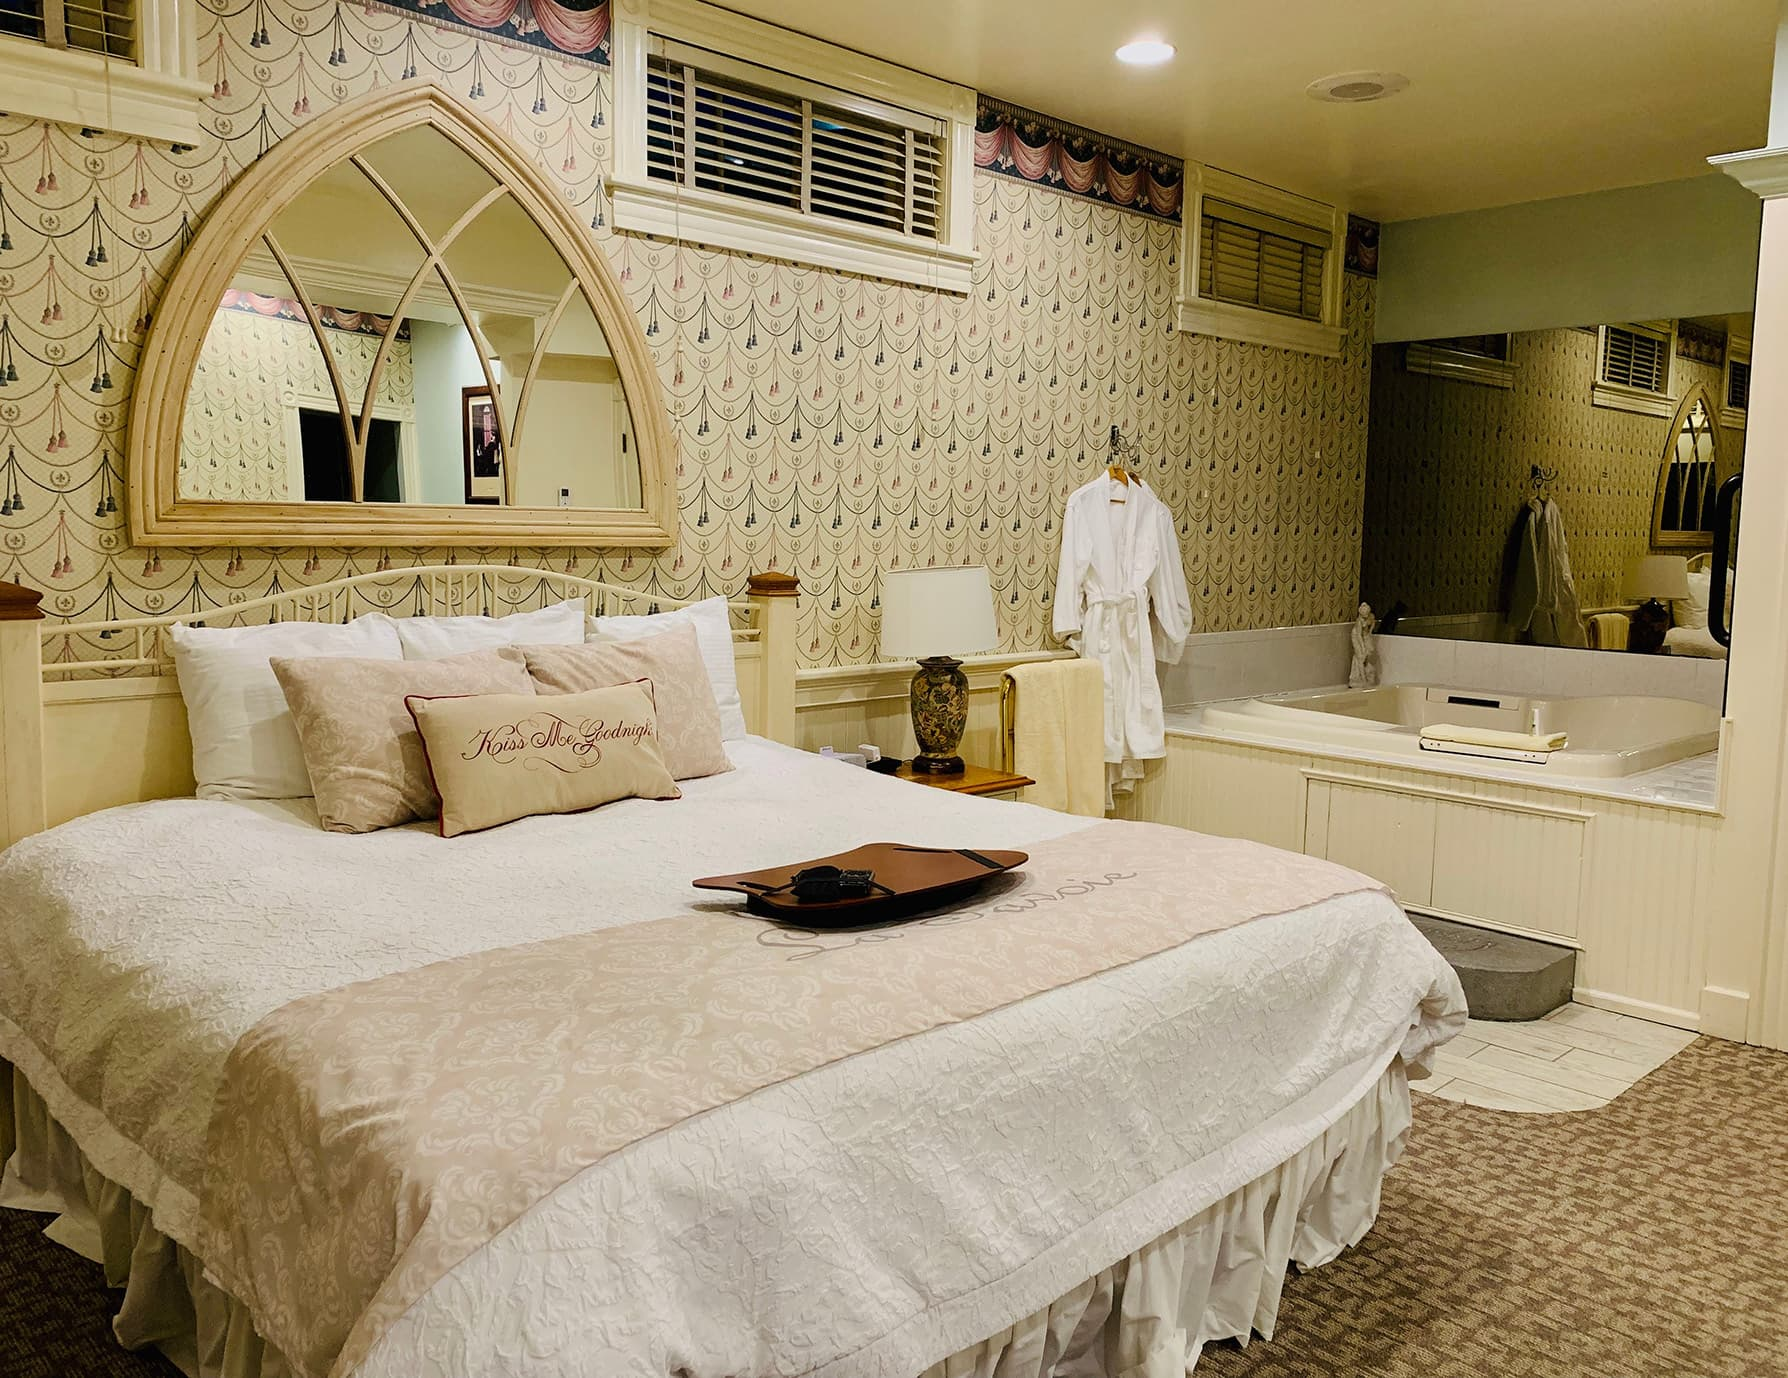 La Savoie Deluxe room with bed and spa tub - Hotel in Lee, MA